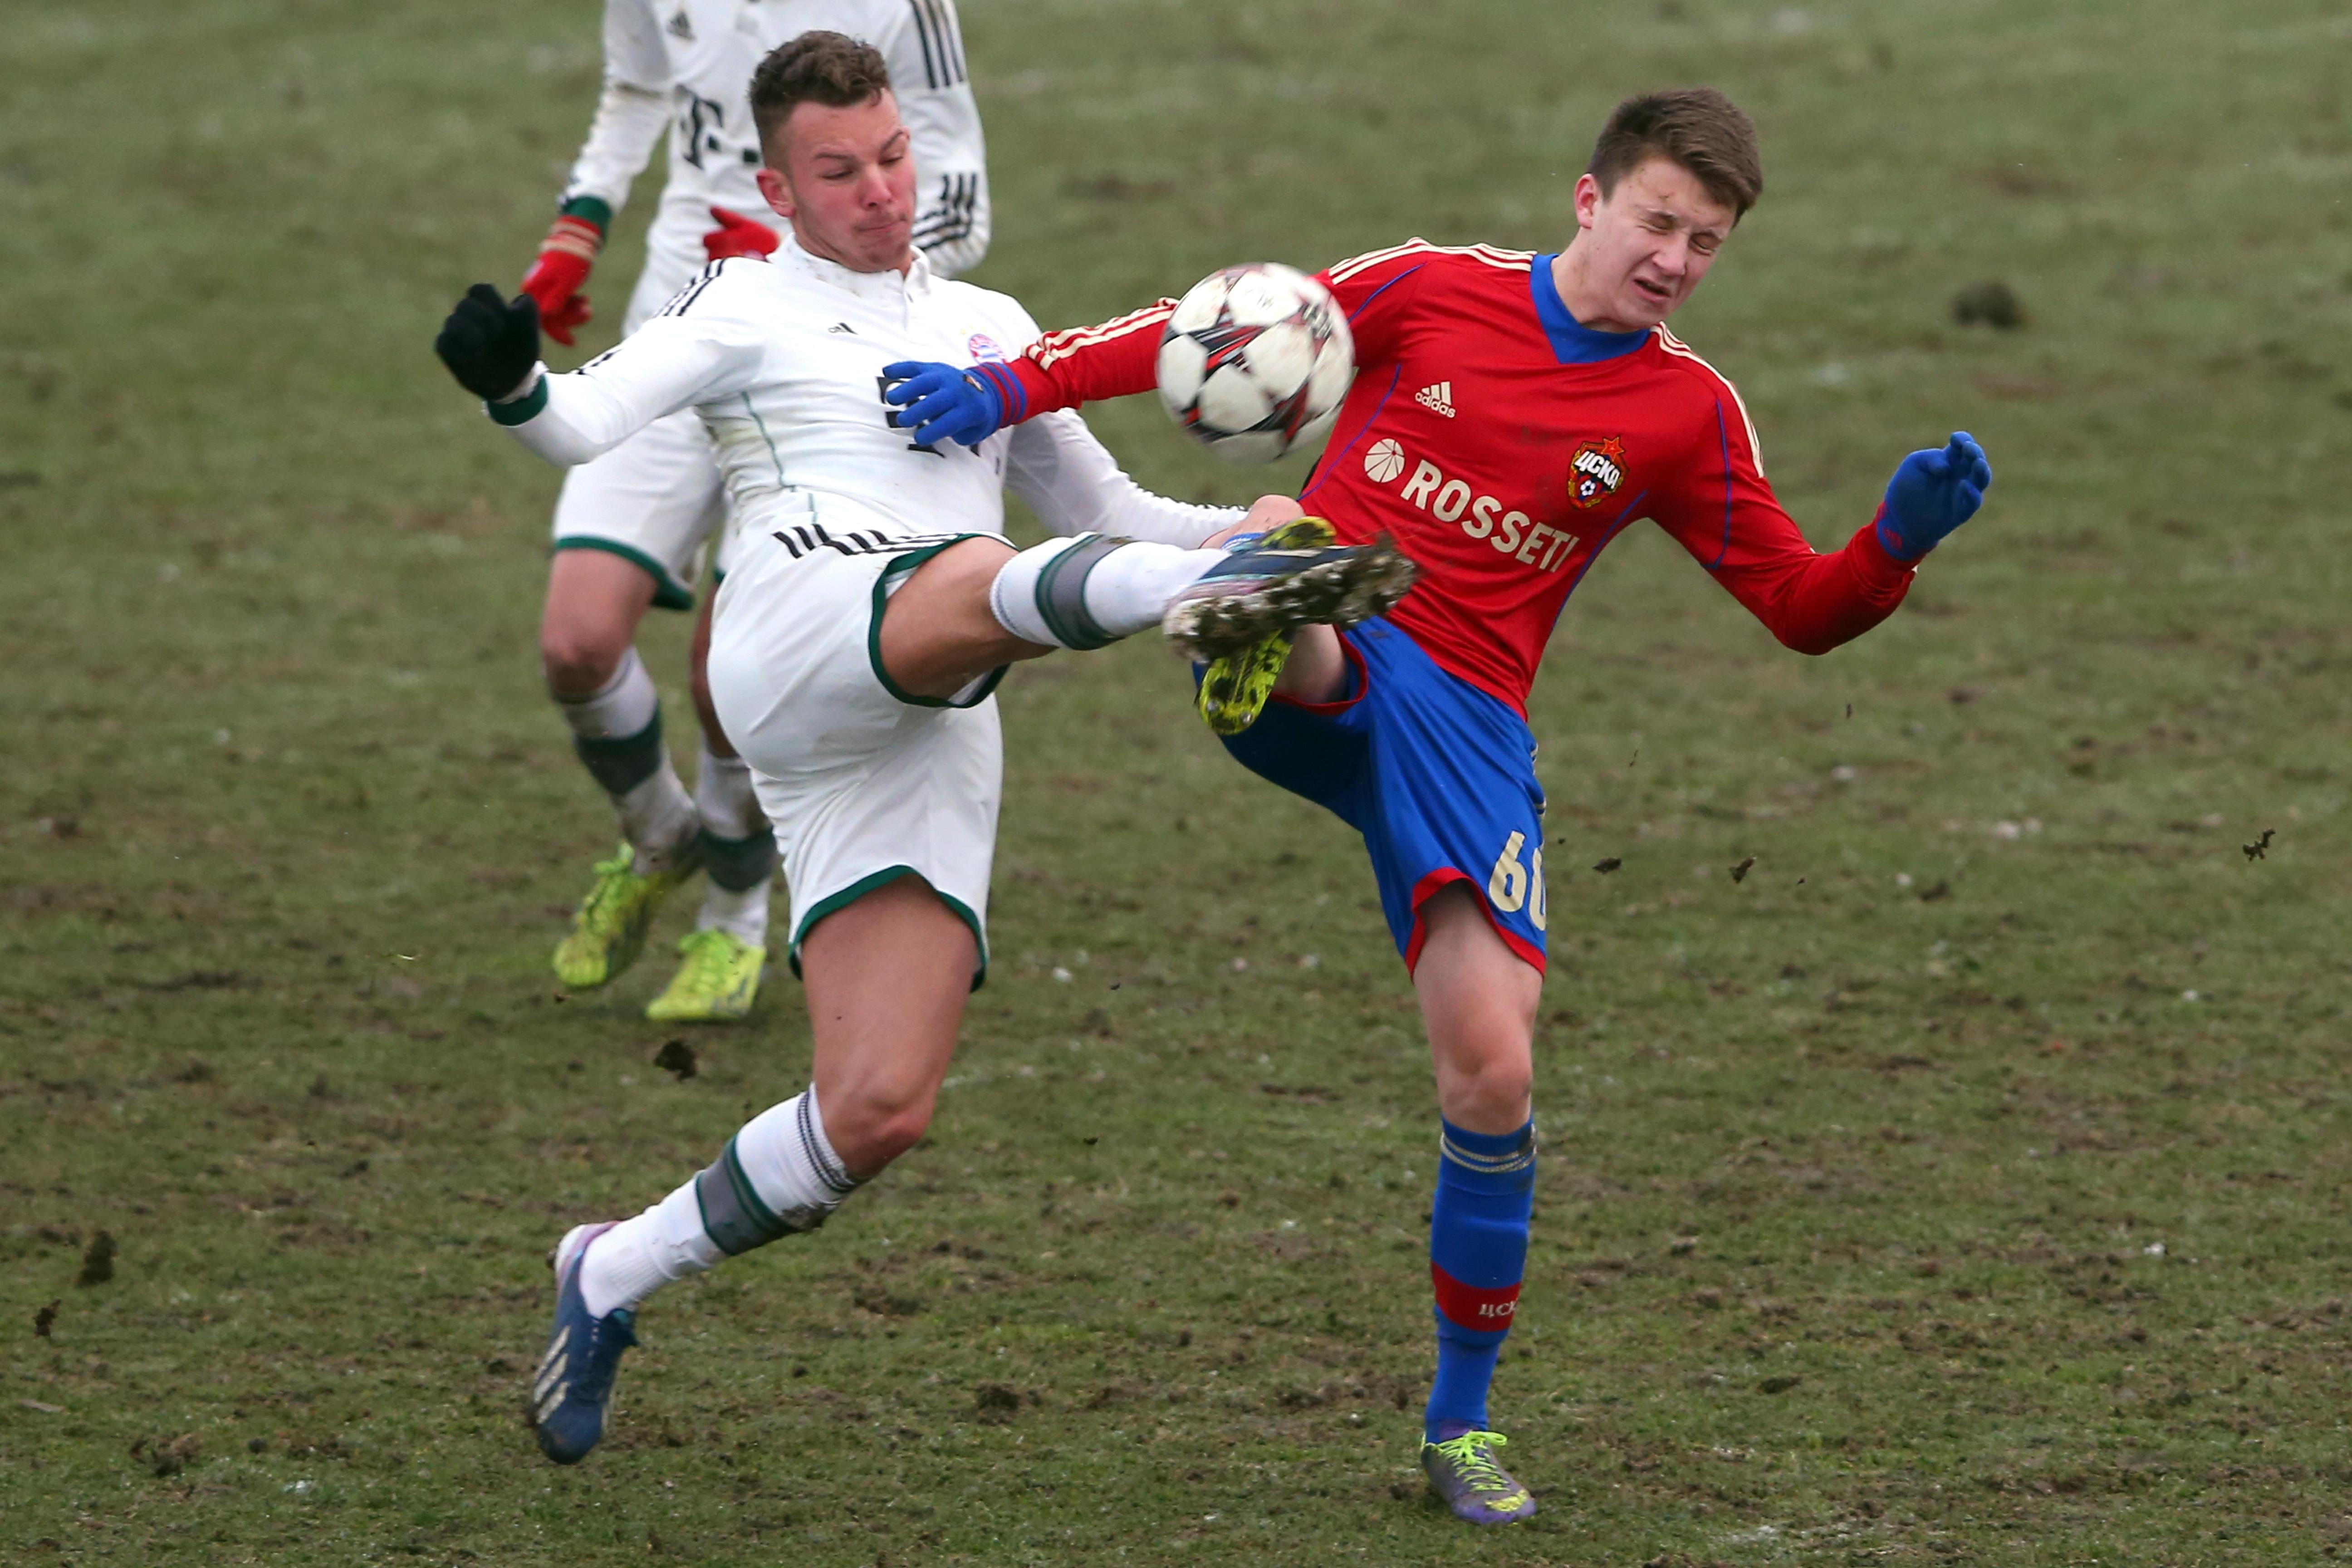 The midfielder began to make an impression in the CSKA youth teams